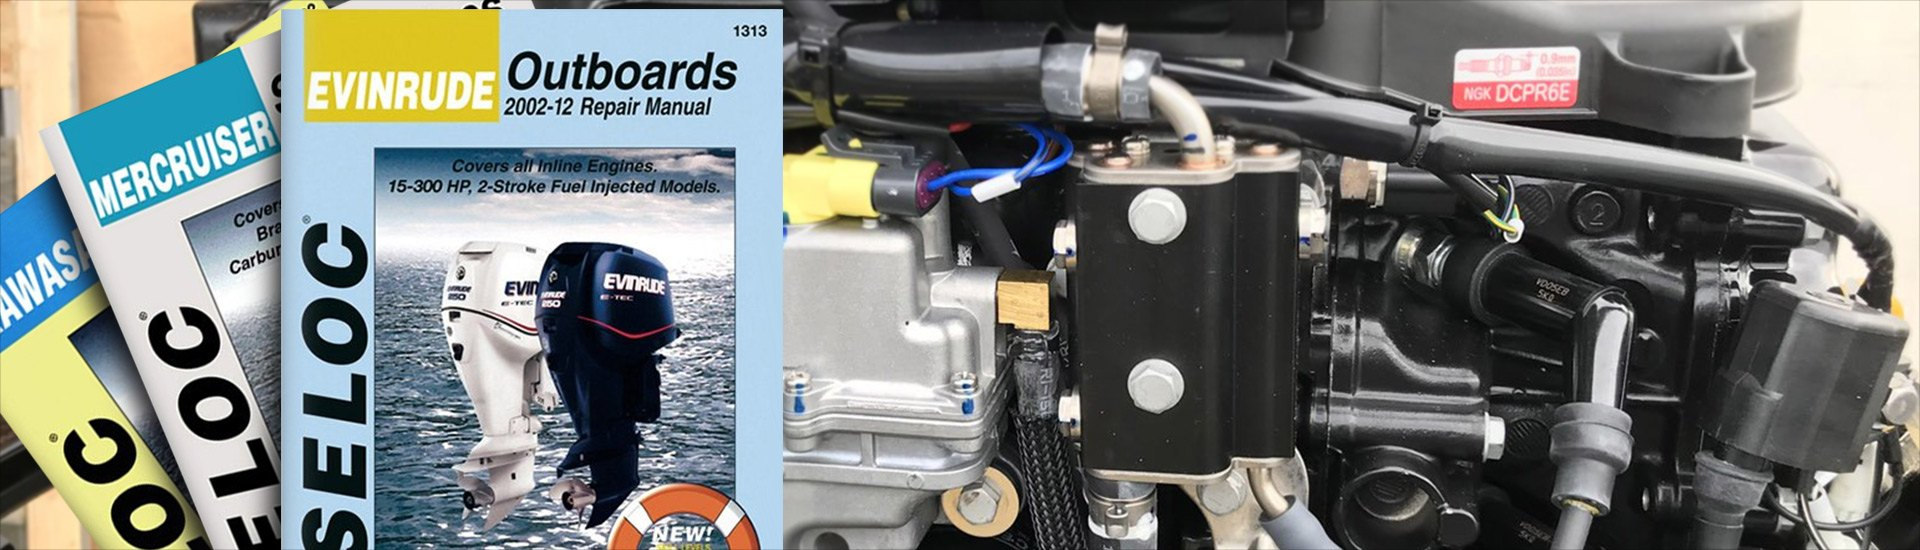 Engine Manuals & Guides